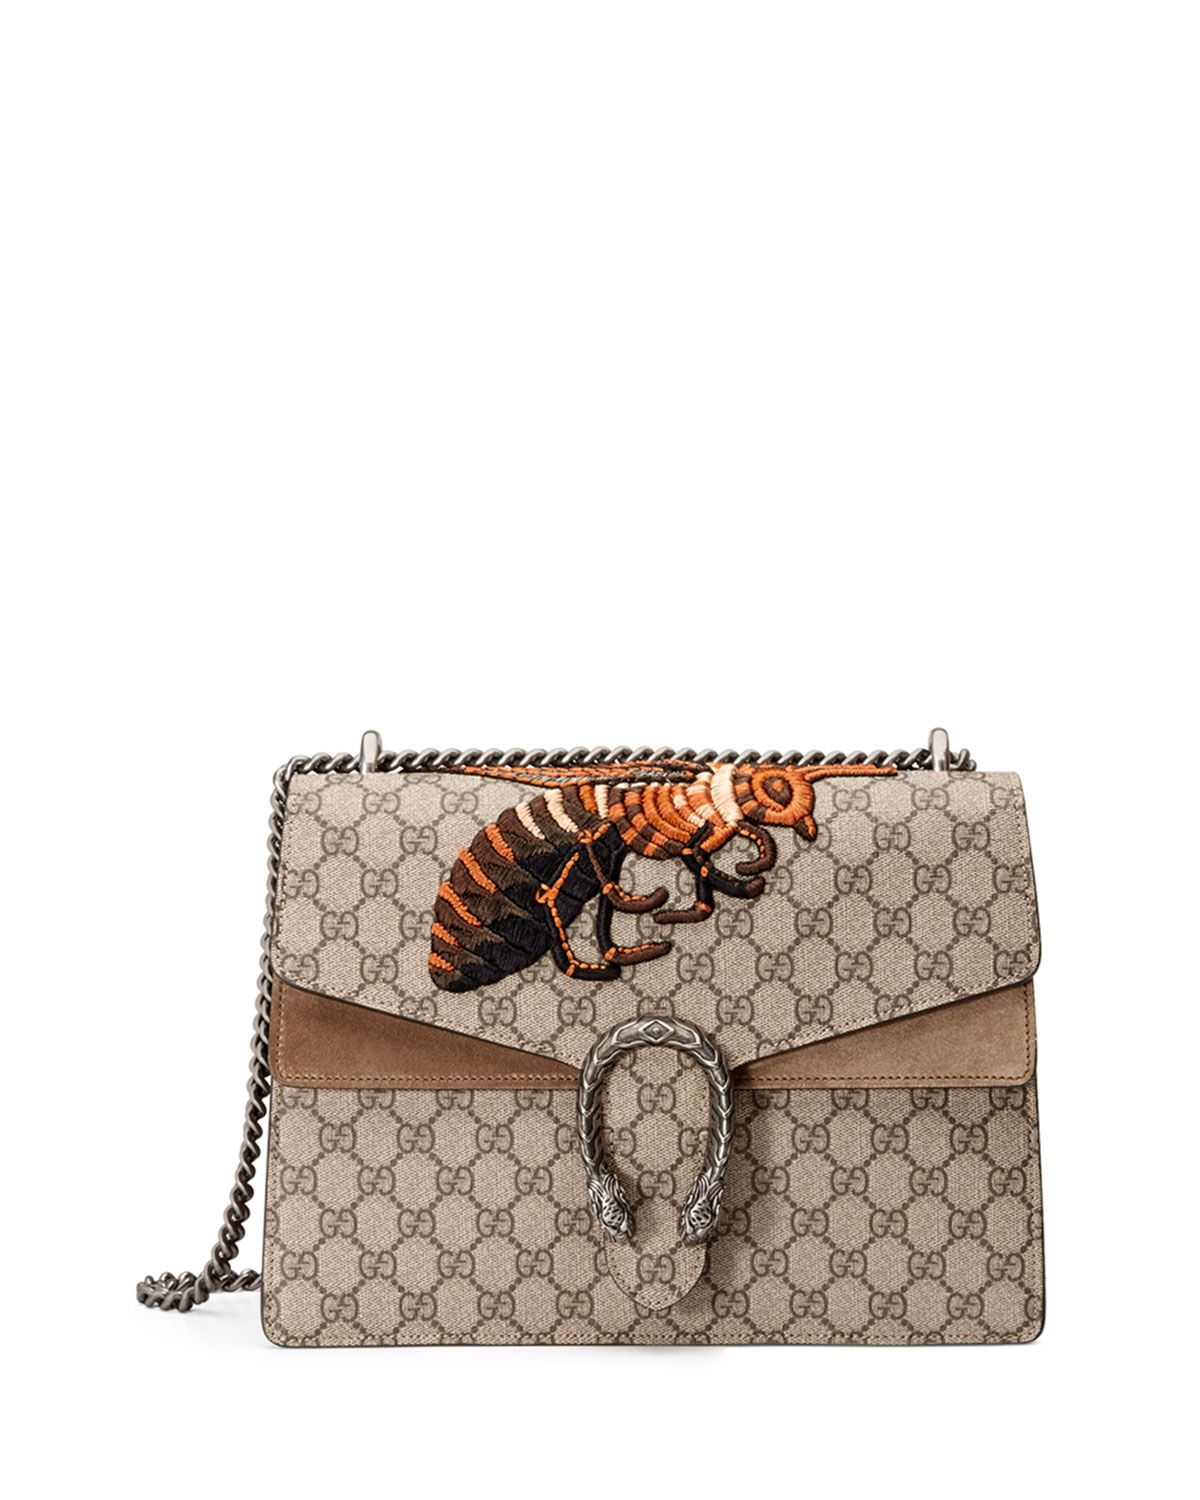 ad6bd05844b3cd Gucci Dionysus GG Supreme Canvas Embroidered Queen Bee Shoulder Bag, Multi